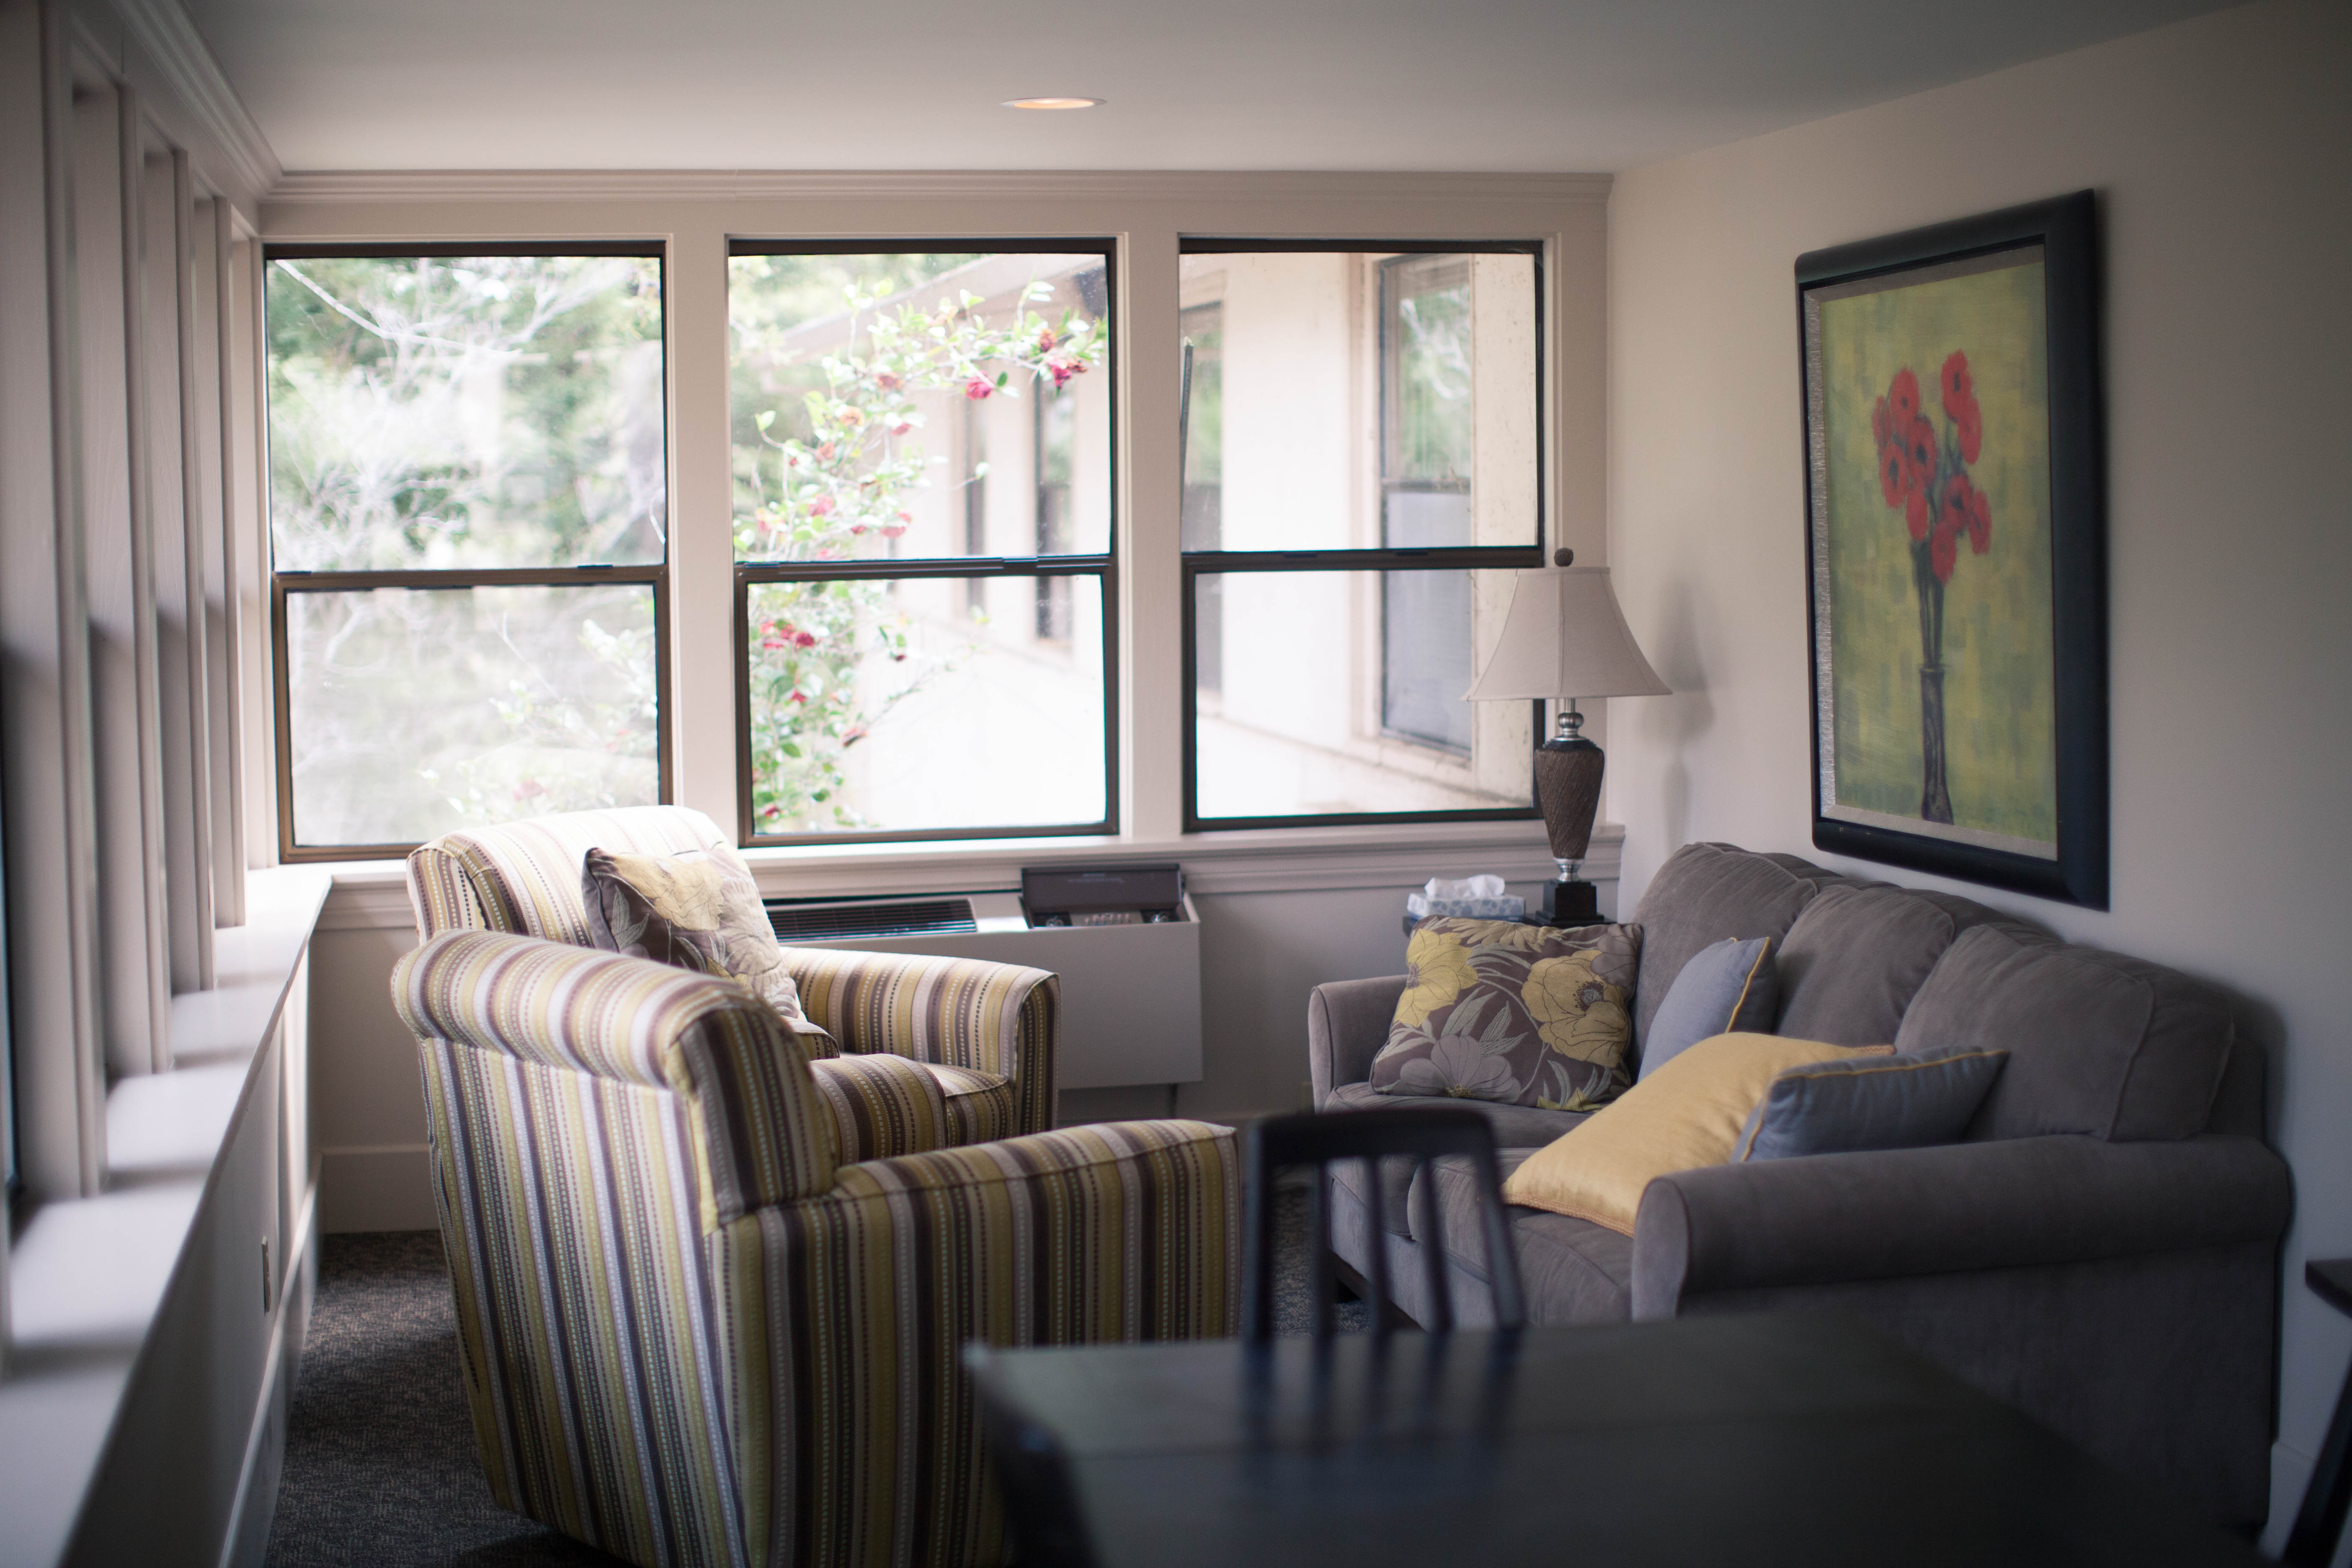 Residential Facilities living room